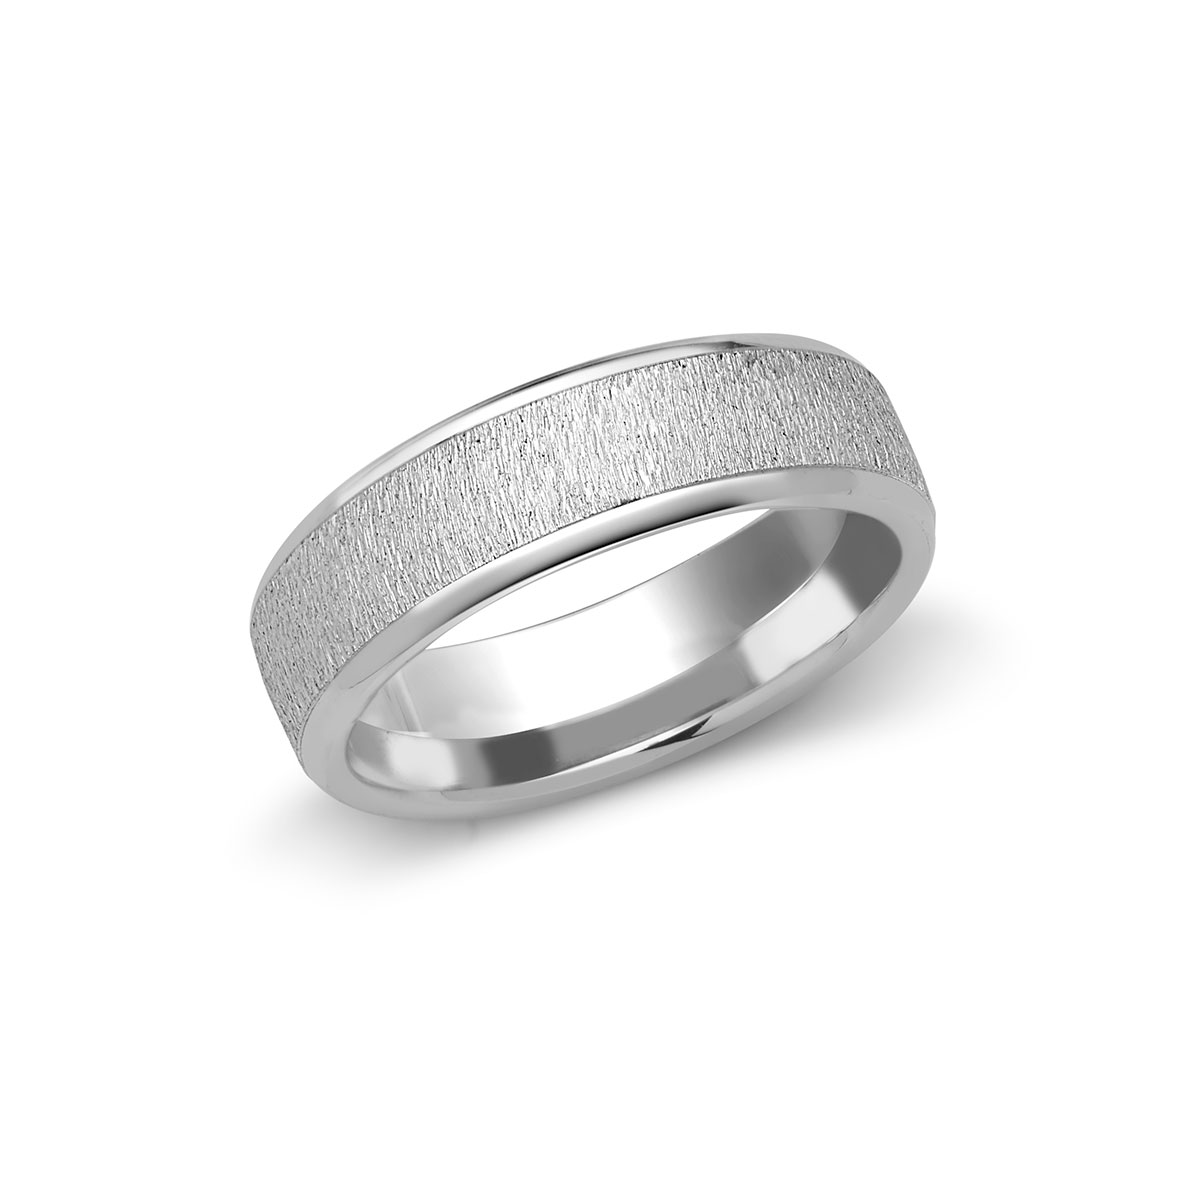 Humphreys London wedding ring